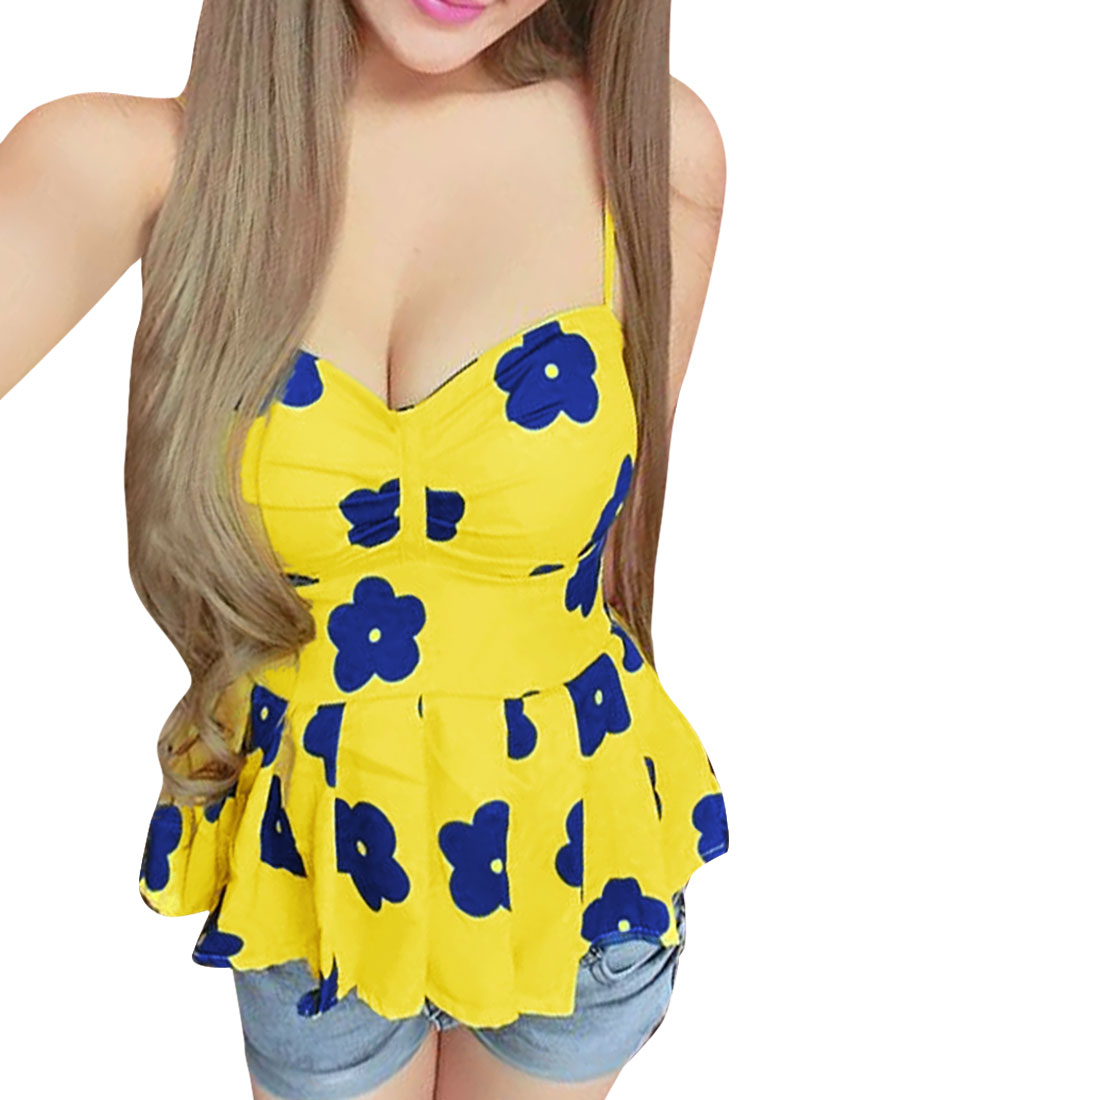 Woman Chic Sweetheart Padded Bust Floral Pattern Yellow Peplum Tank Top XS